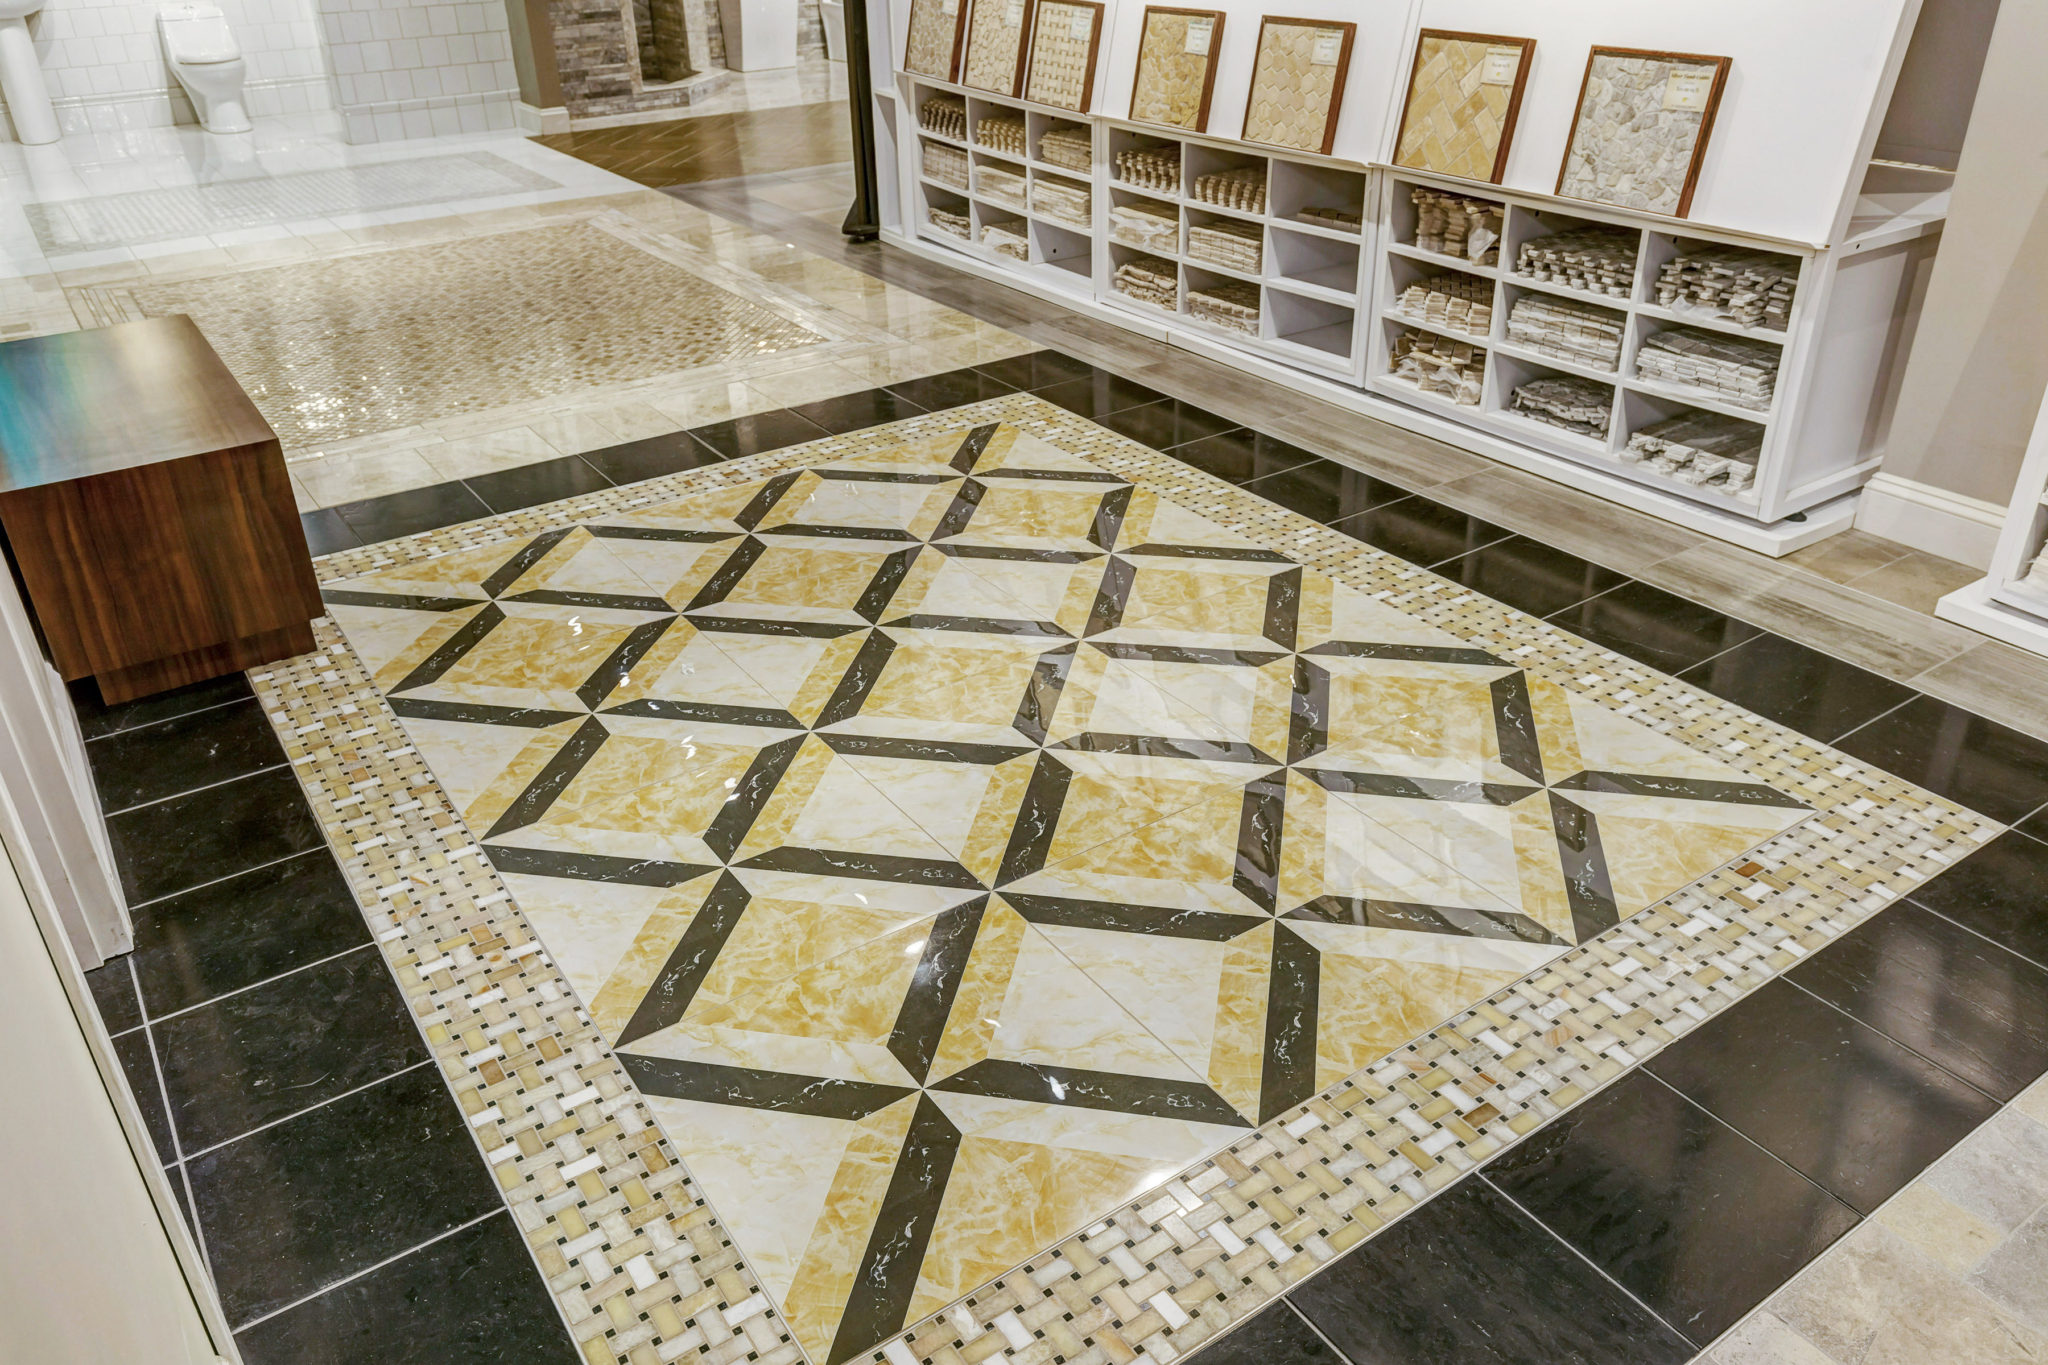 Tile Showroom Eureka 63025: Choose Beautiful Tiles For Any Floor